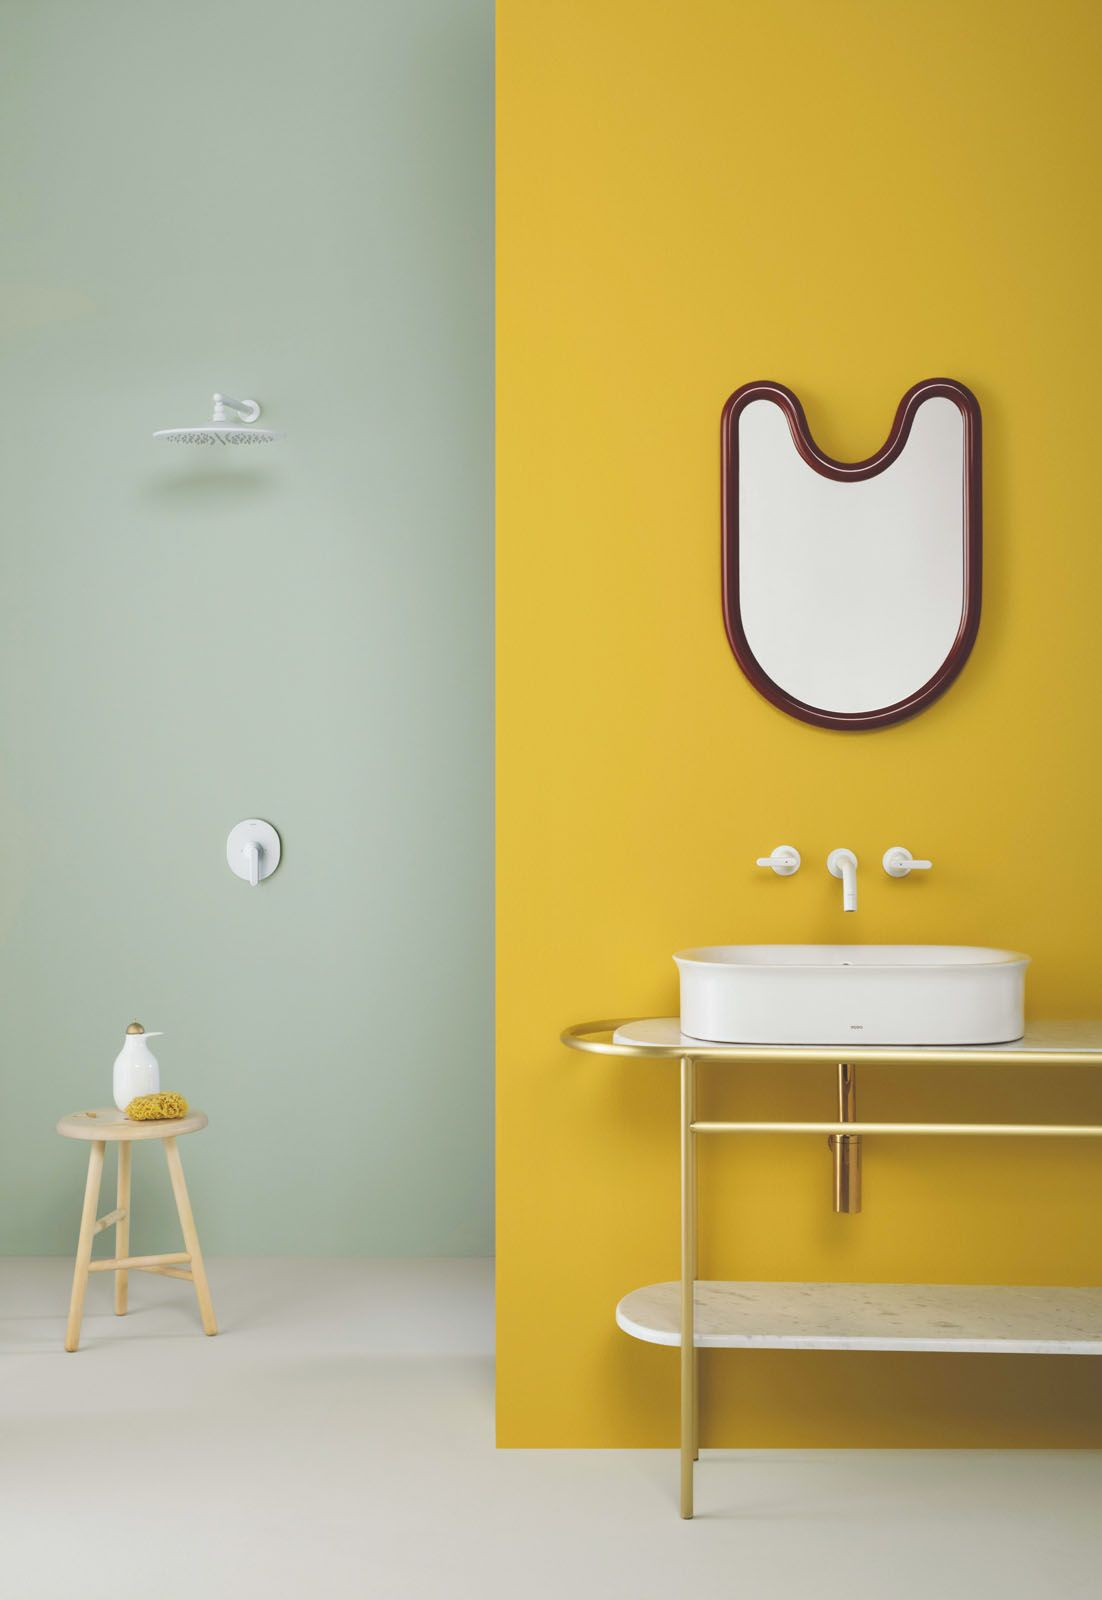 Living City collection by Laufen, from Carera Bathroom